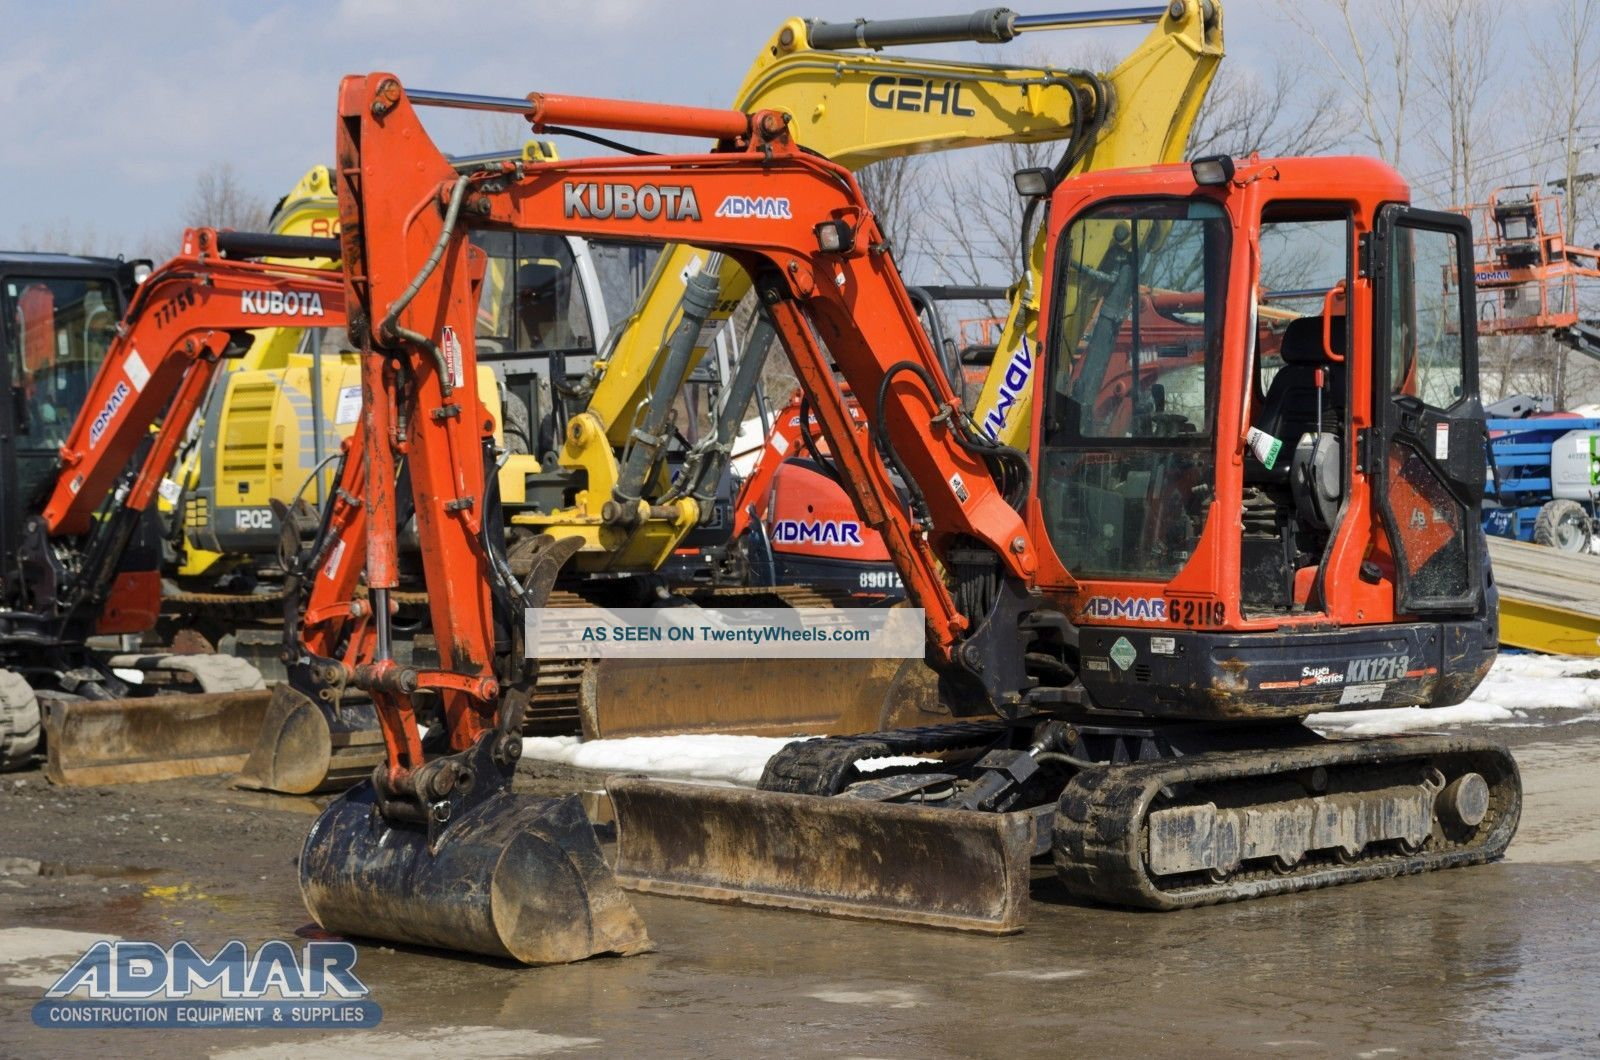 2012 Kubota Kx121r3at3 Excavator,  With Cab,  Angle Blade And Thumb. Excavators photo